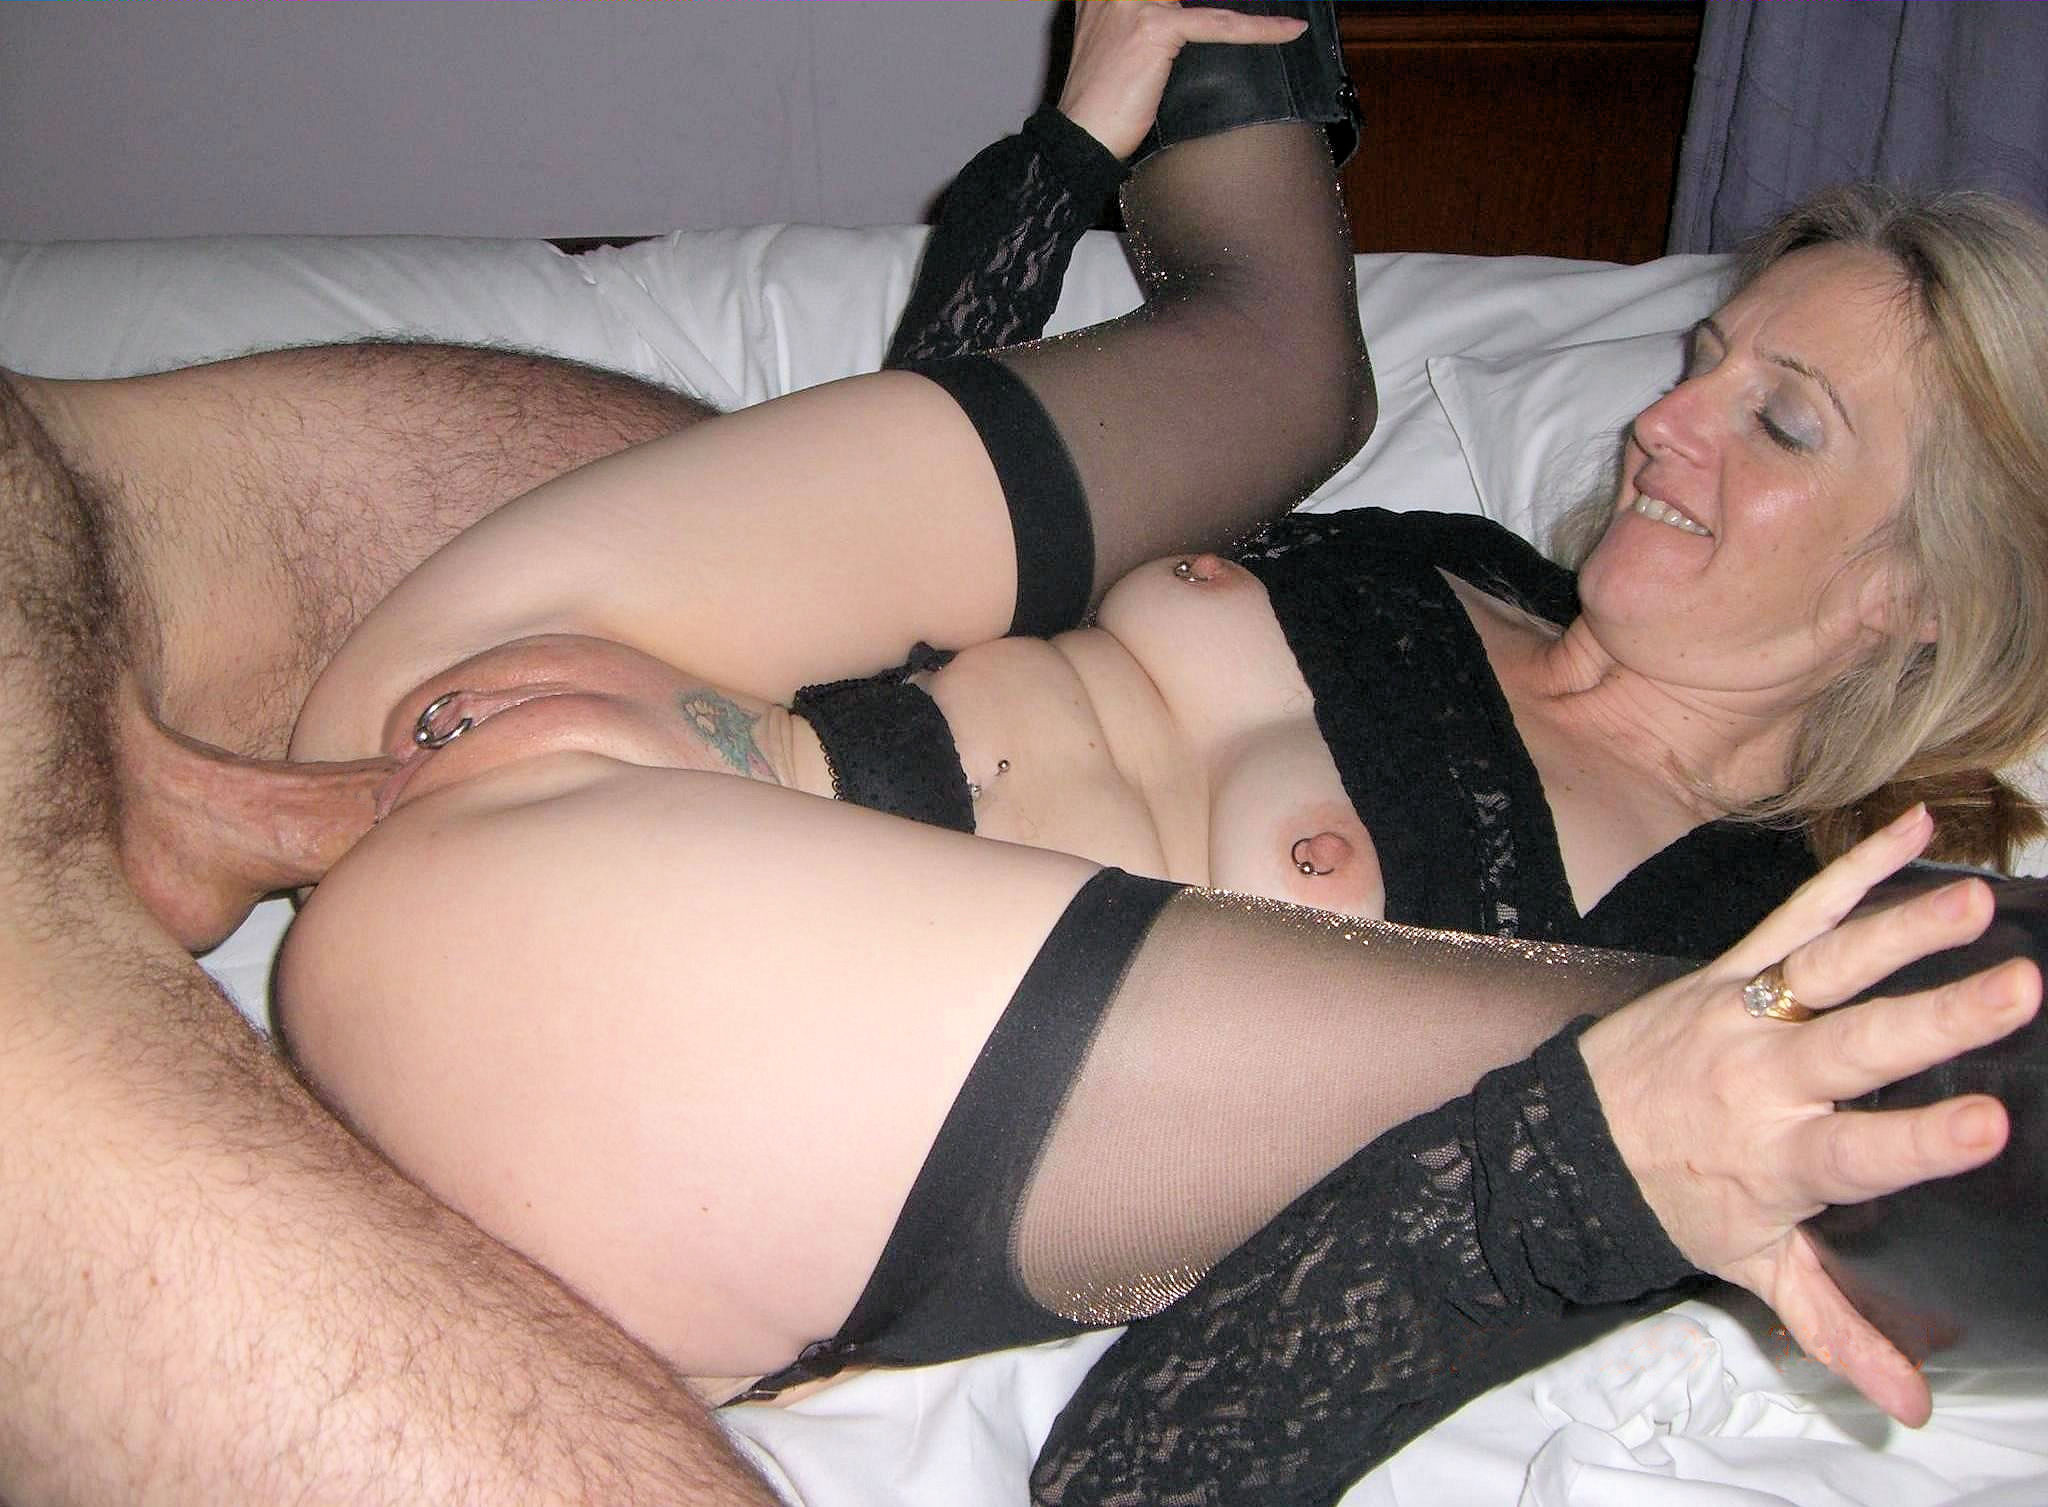 Amateur mature anal video girl spreading legs